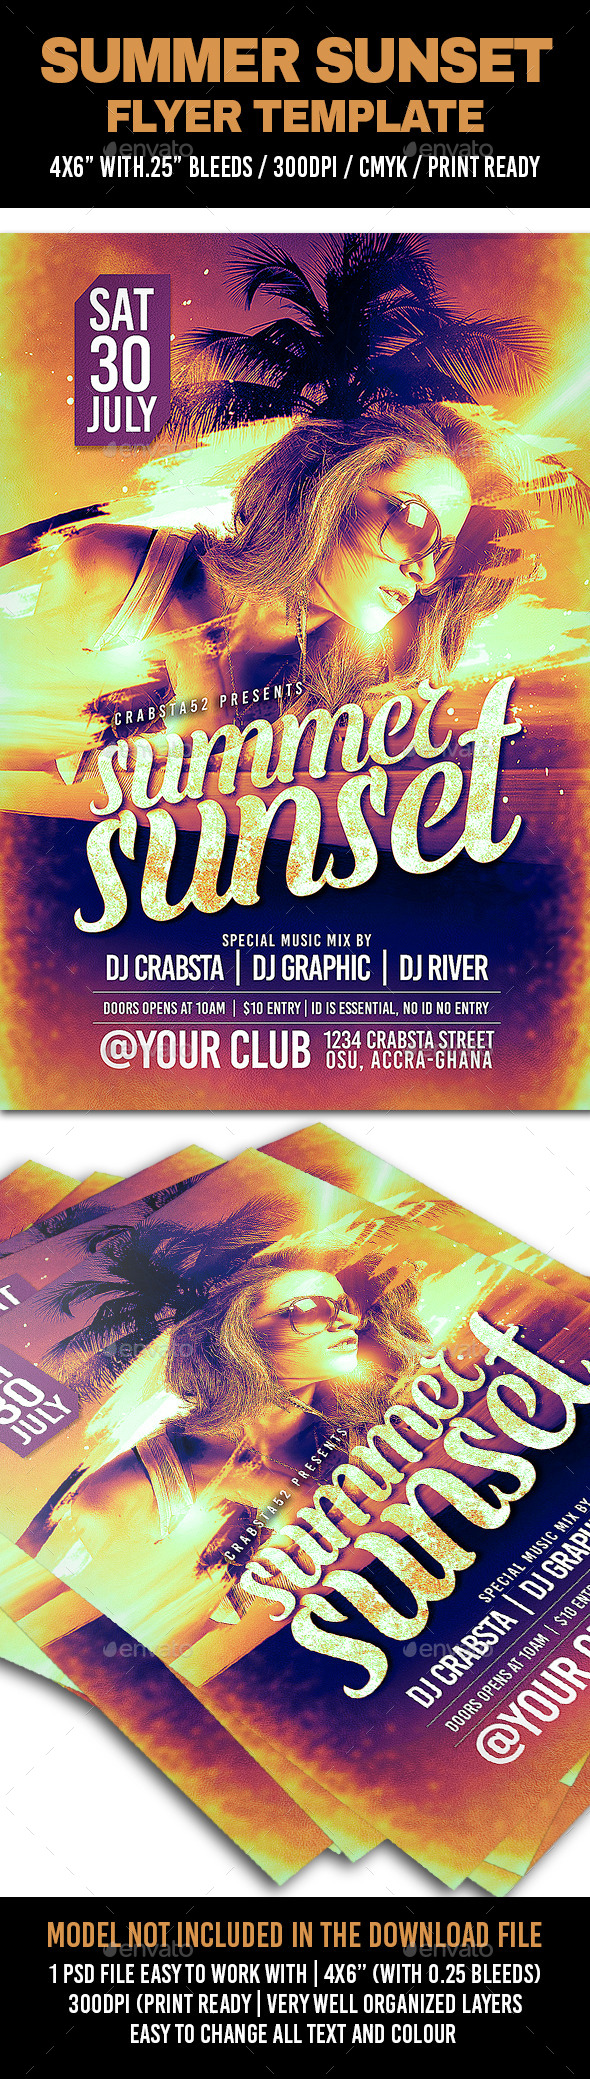 GraphicRiver Summer Sunset Flyer Template 11954602